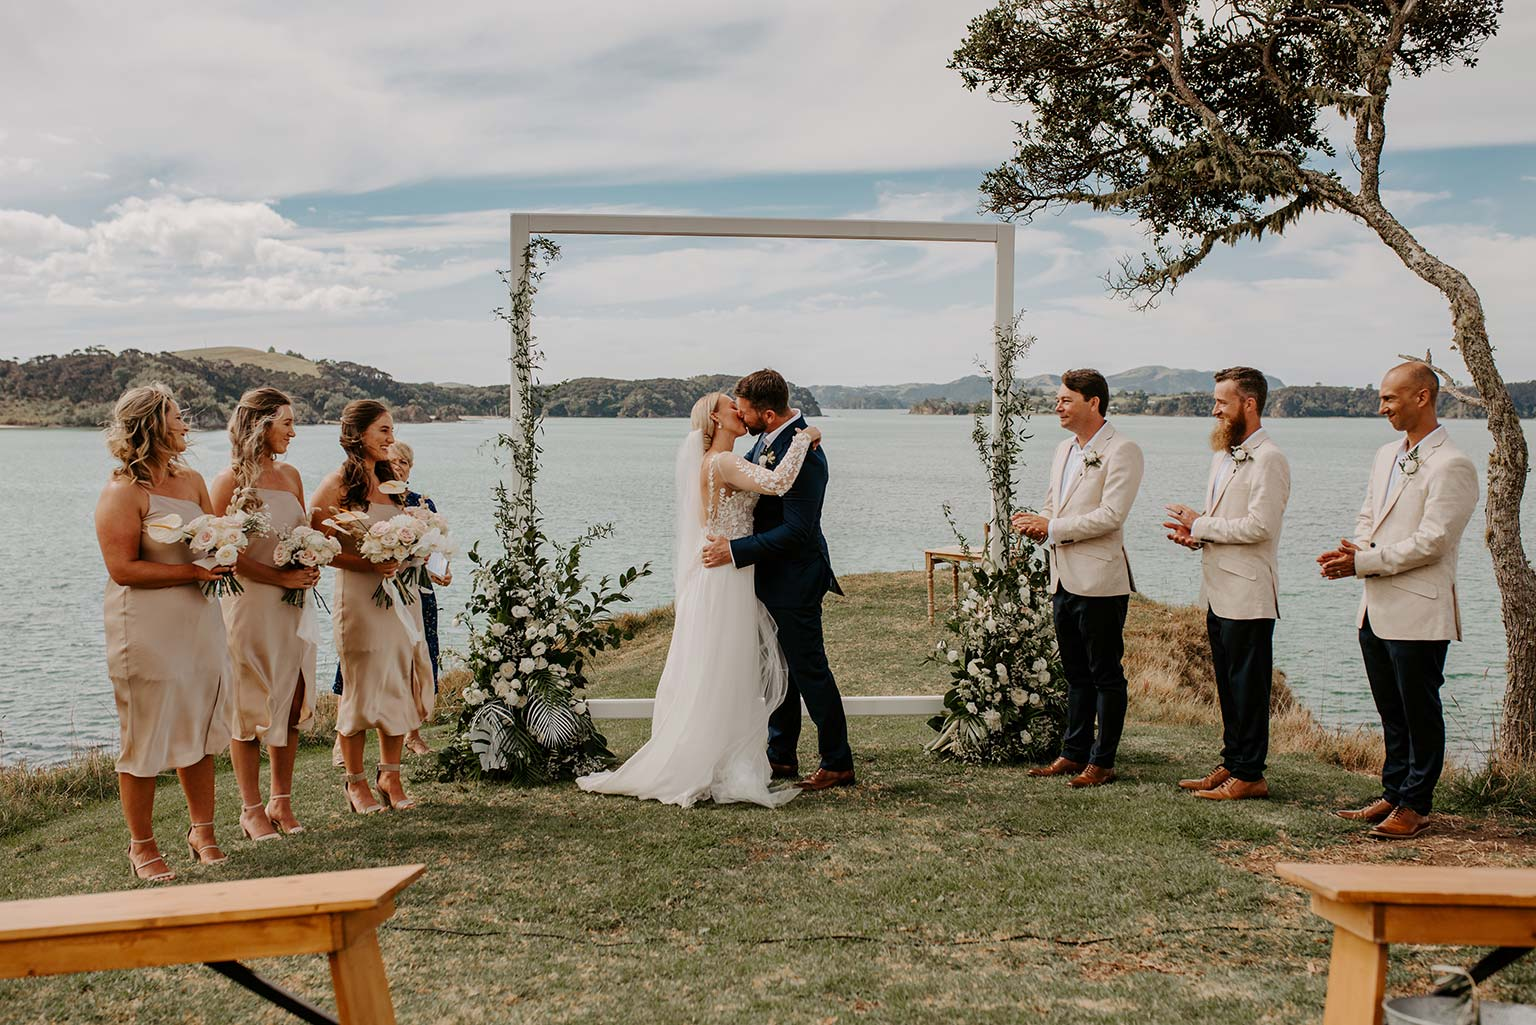 Vinka Design Features Real Weddings - bride and groom kiss at ceremony - bride wearing a bespoke Makaira gown with silk-chiffon and tulle overskirt giving her a beautiful train which could be removed later on to reveal a floor length party dress